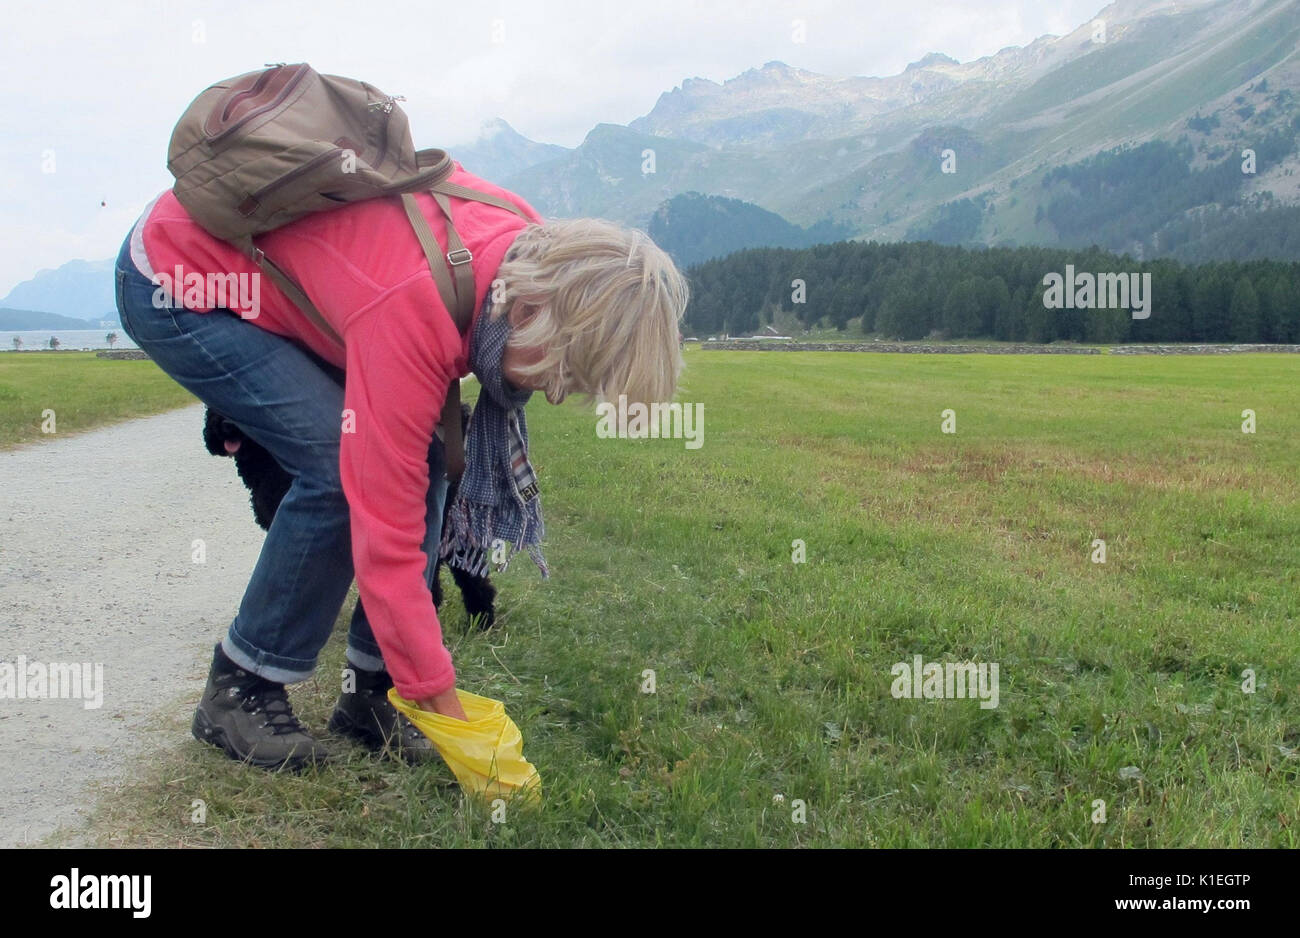 Graubunden, Switzerland. 21st July, 2017. Picture of Christa Alder picking up the waste of her dog Henry, taken at a meadow near Sils lake in the canton of Graubunden, Switzerland, 21 July 2017. Picking up Henry's s waste is par for the course for Christa even in fields, meadows and hiking trails. Photo: Christiane Oelrich/dpa/Alamy Live News - Stock Image